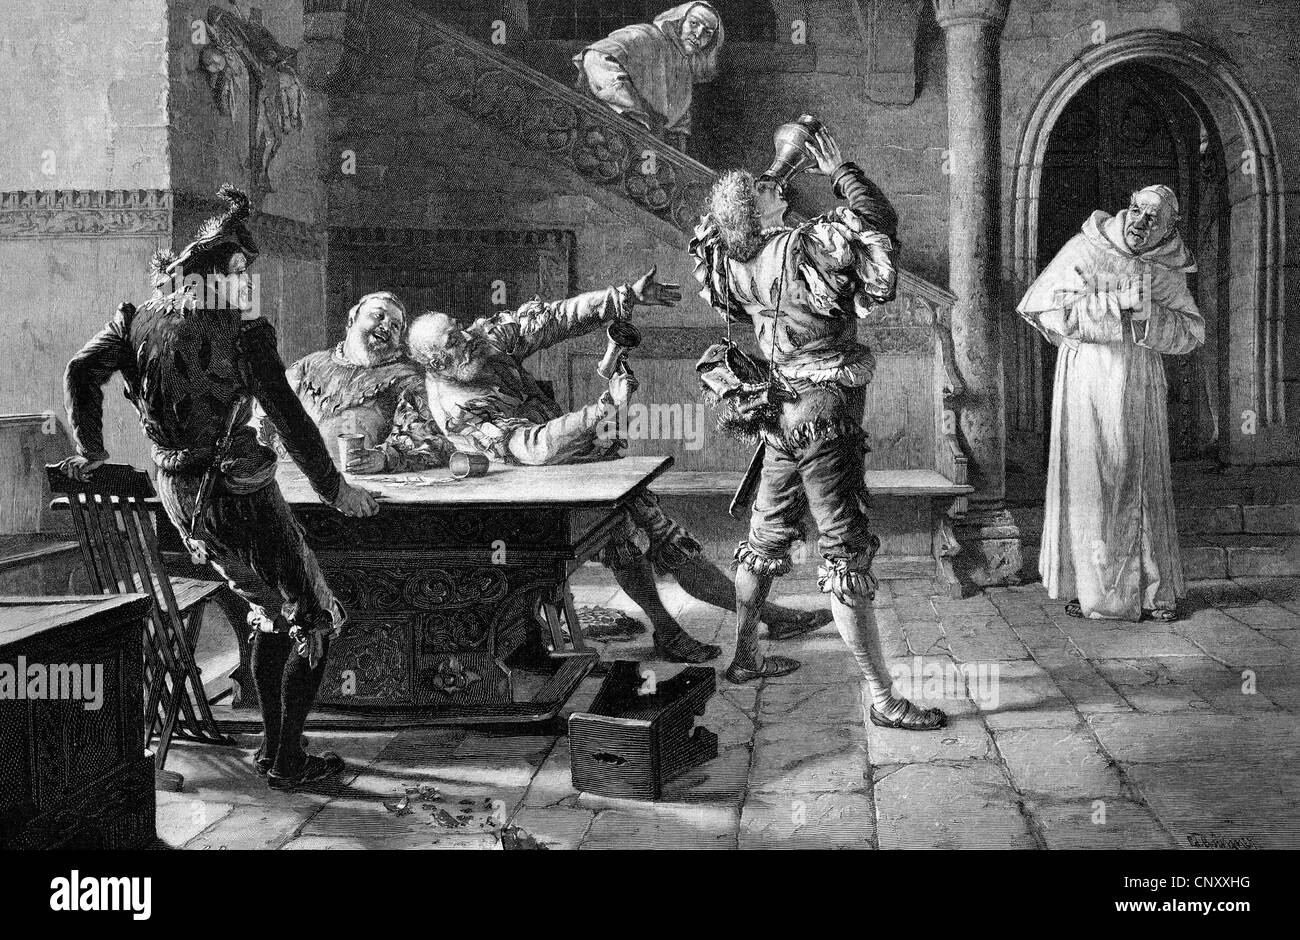 Undue guests at the abbey tavern, historic wood engraving, about 1897 - Stock Image